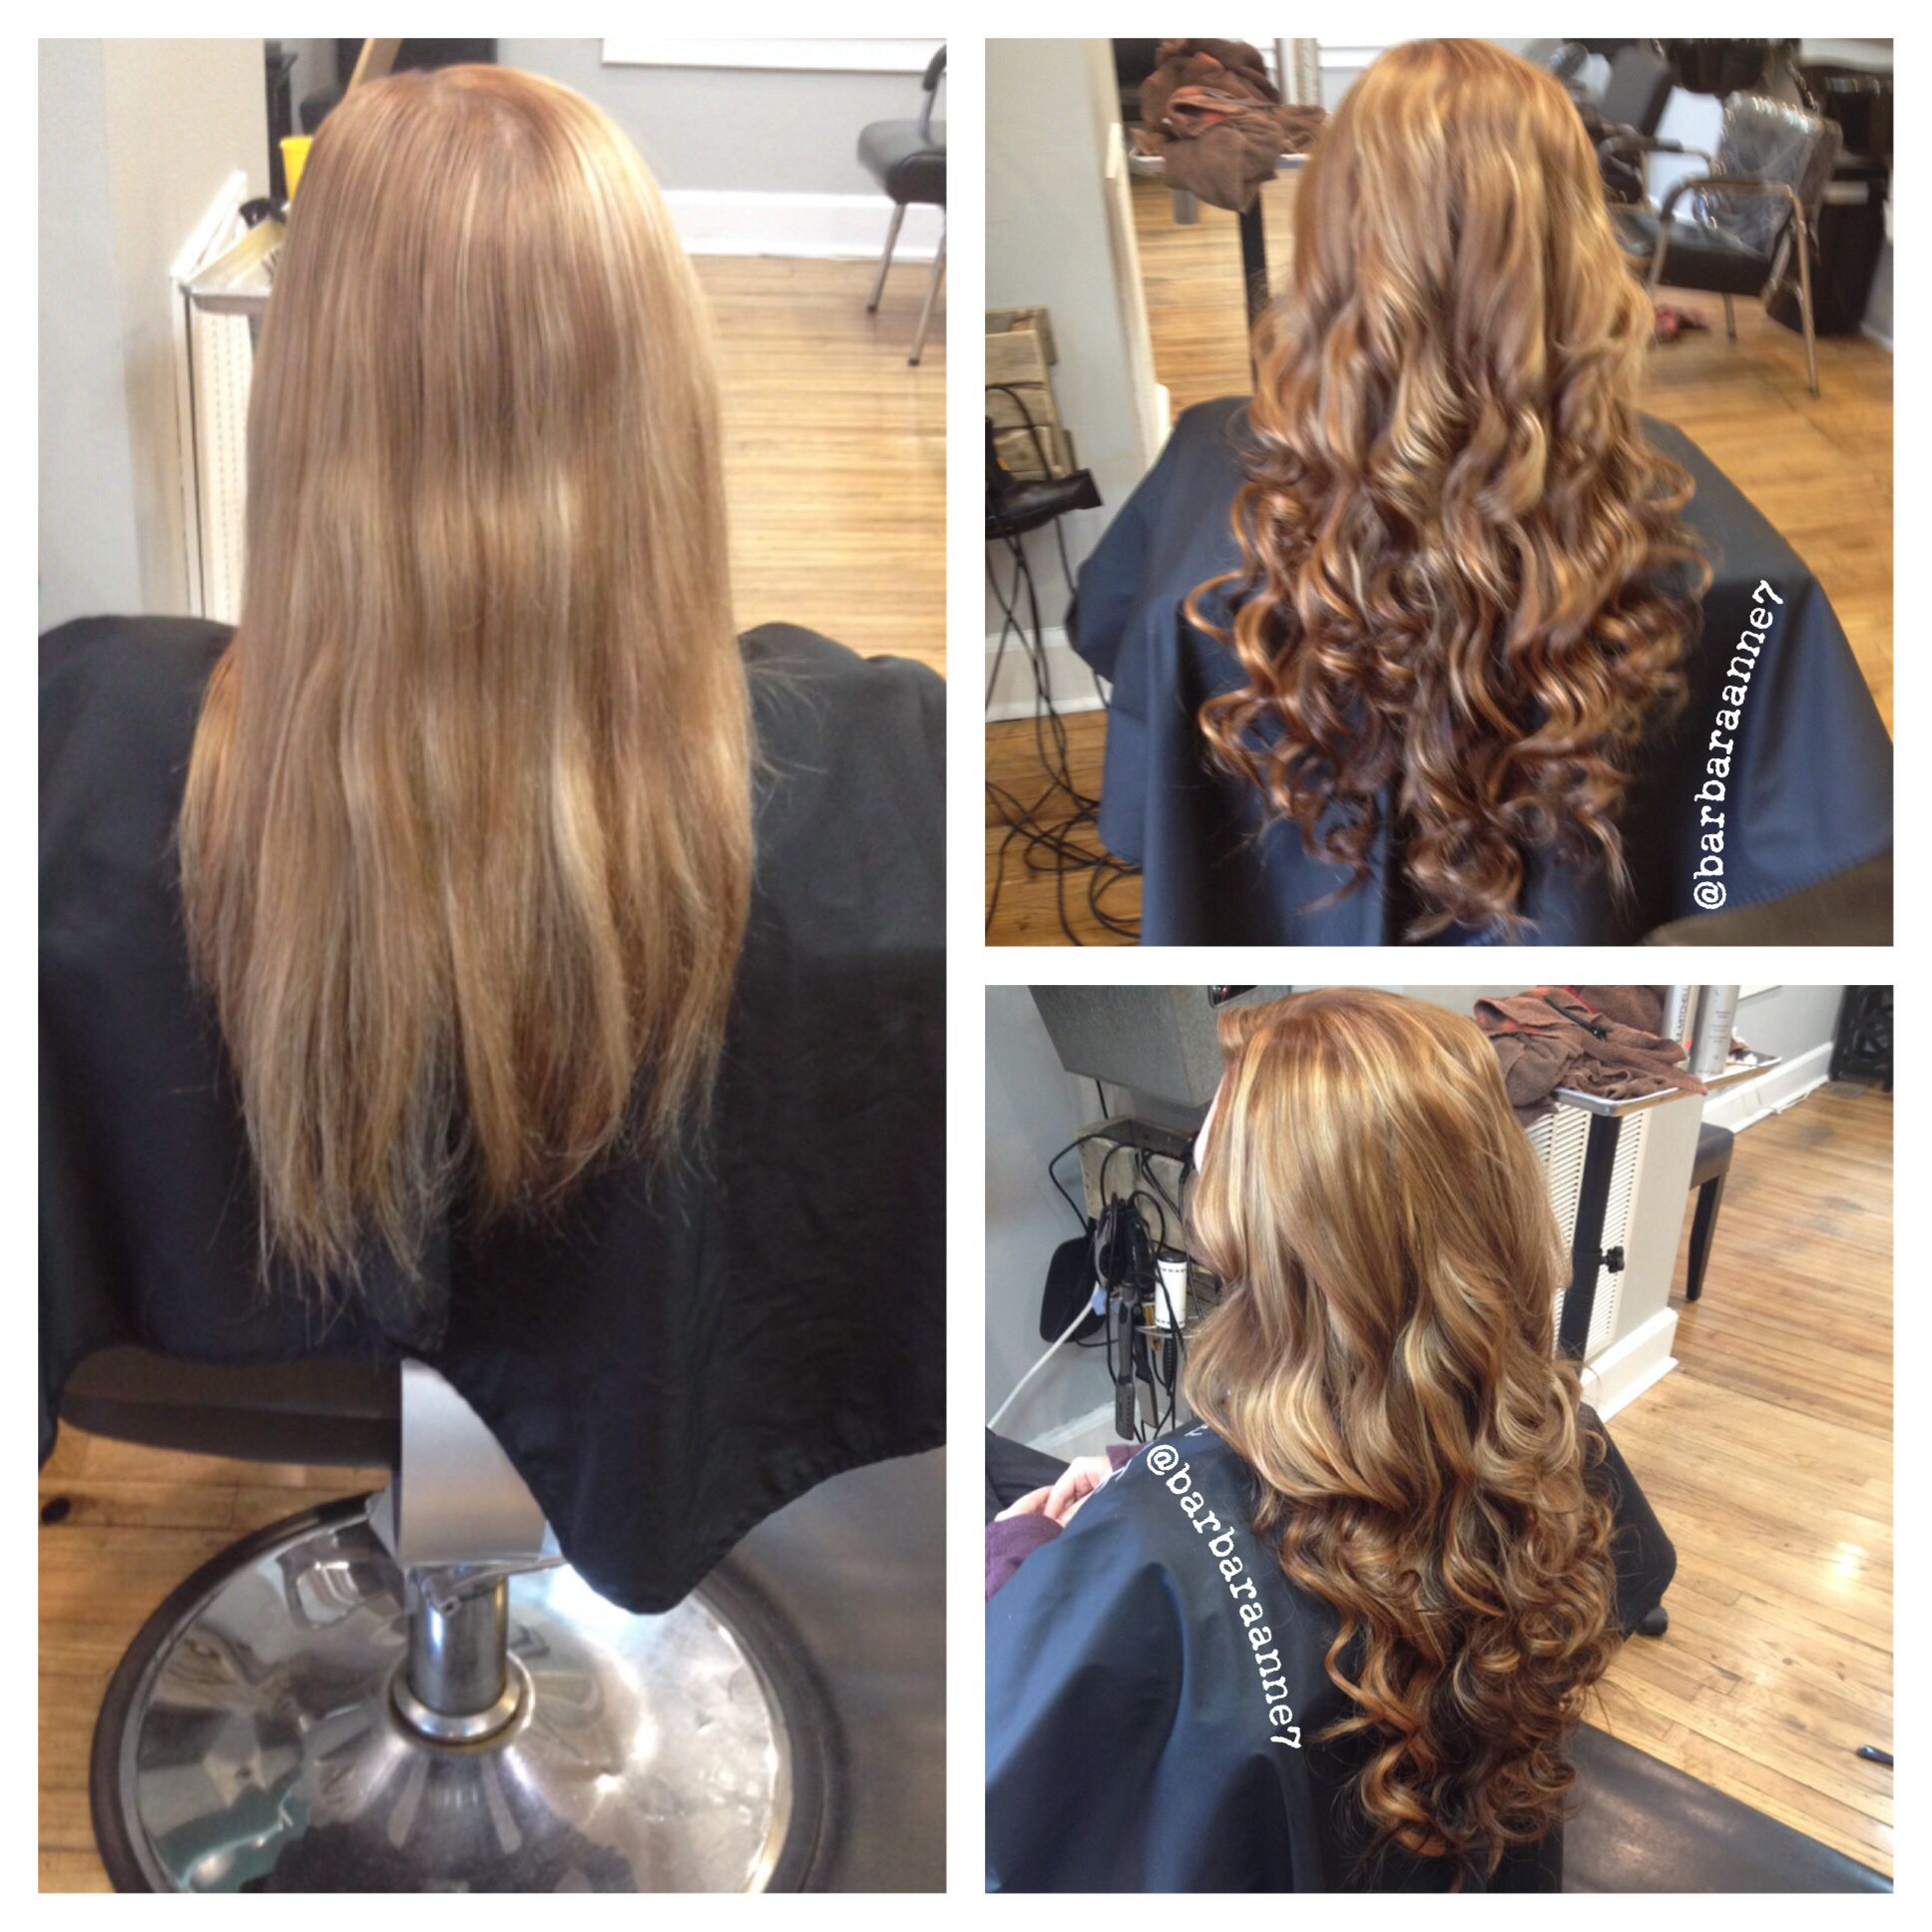 Highlights Lowlights Kenra Color Copper Red Blonde DreamCatcher Hair Extensions